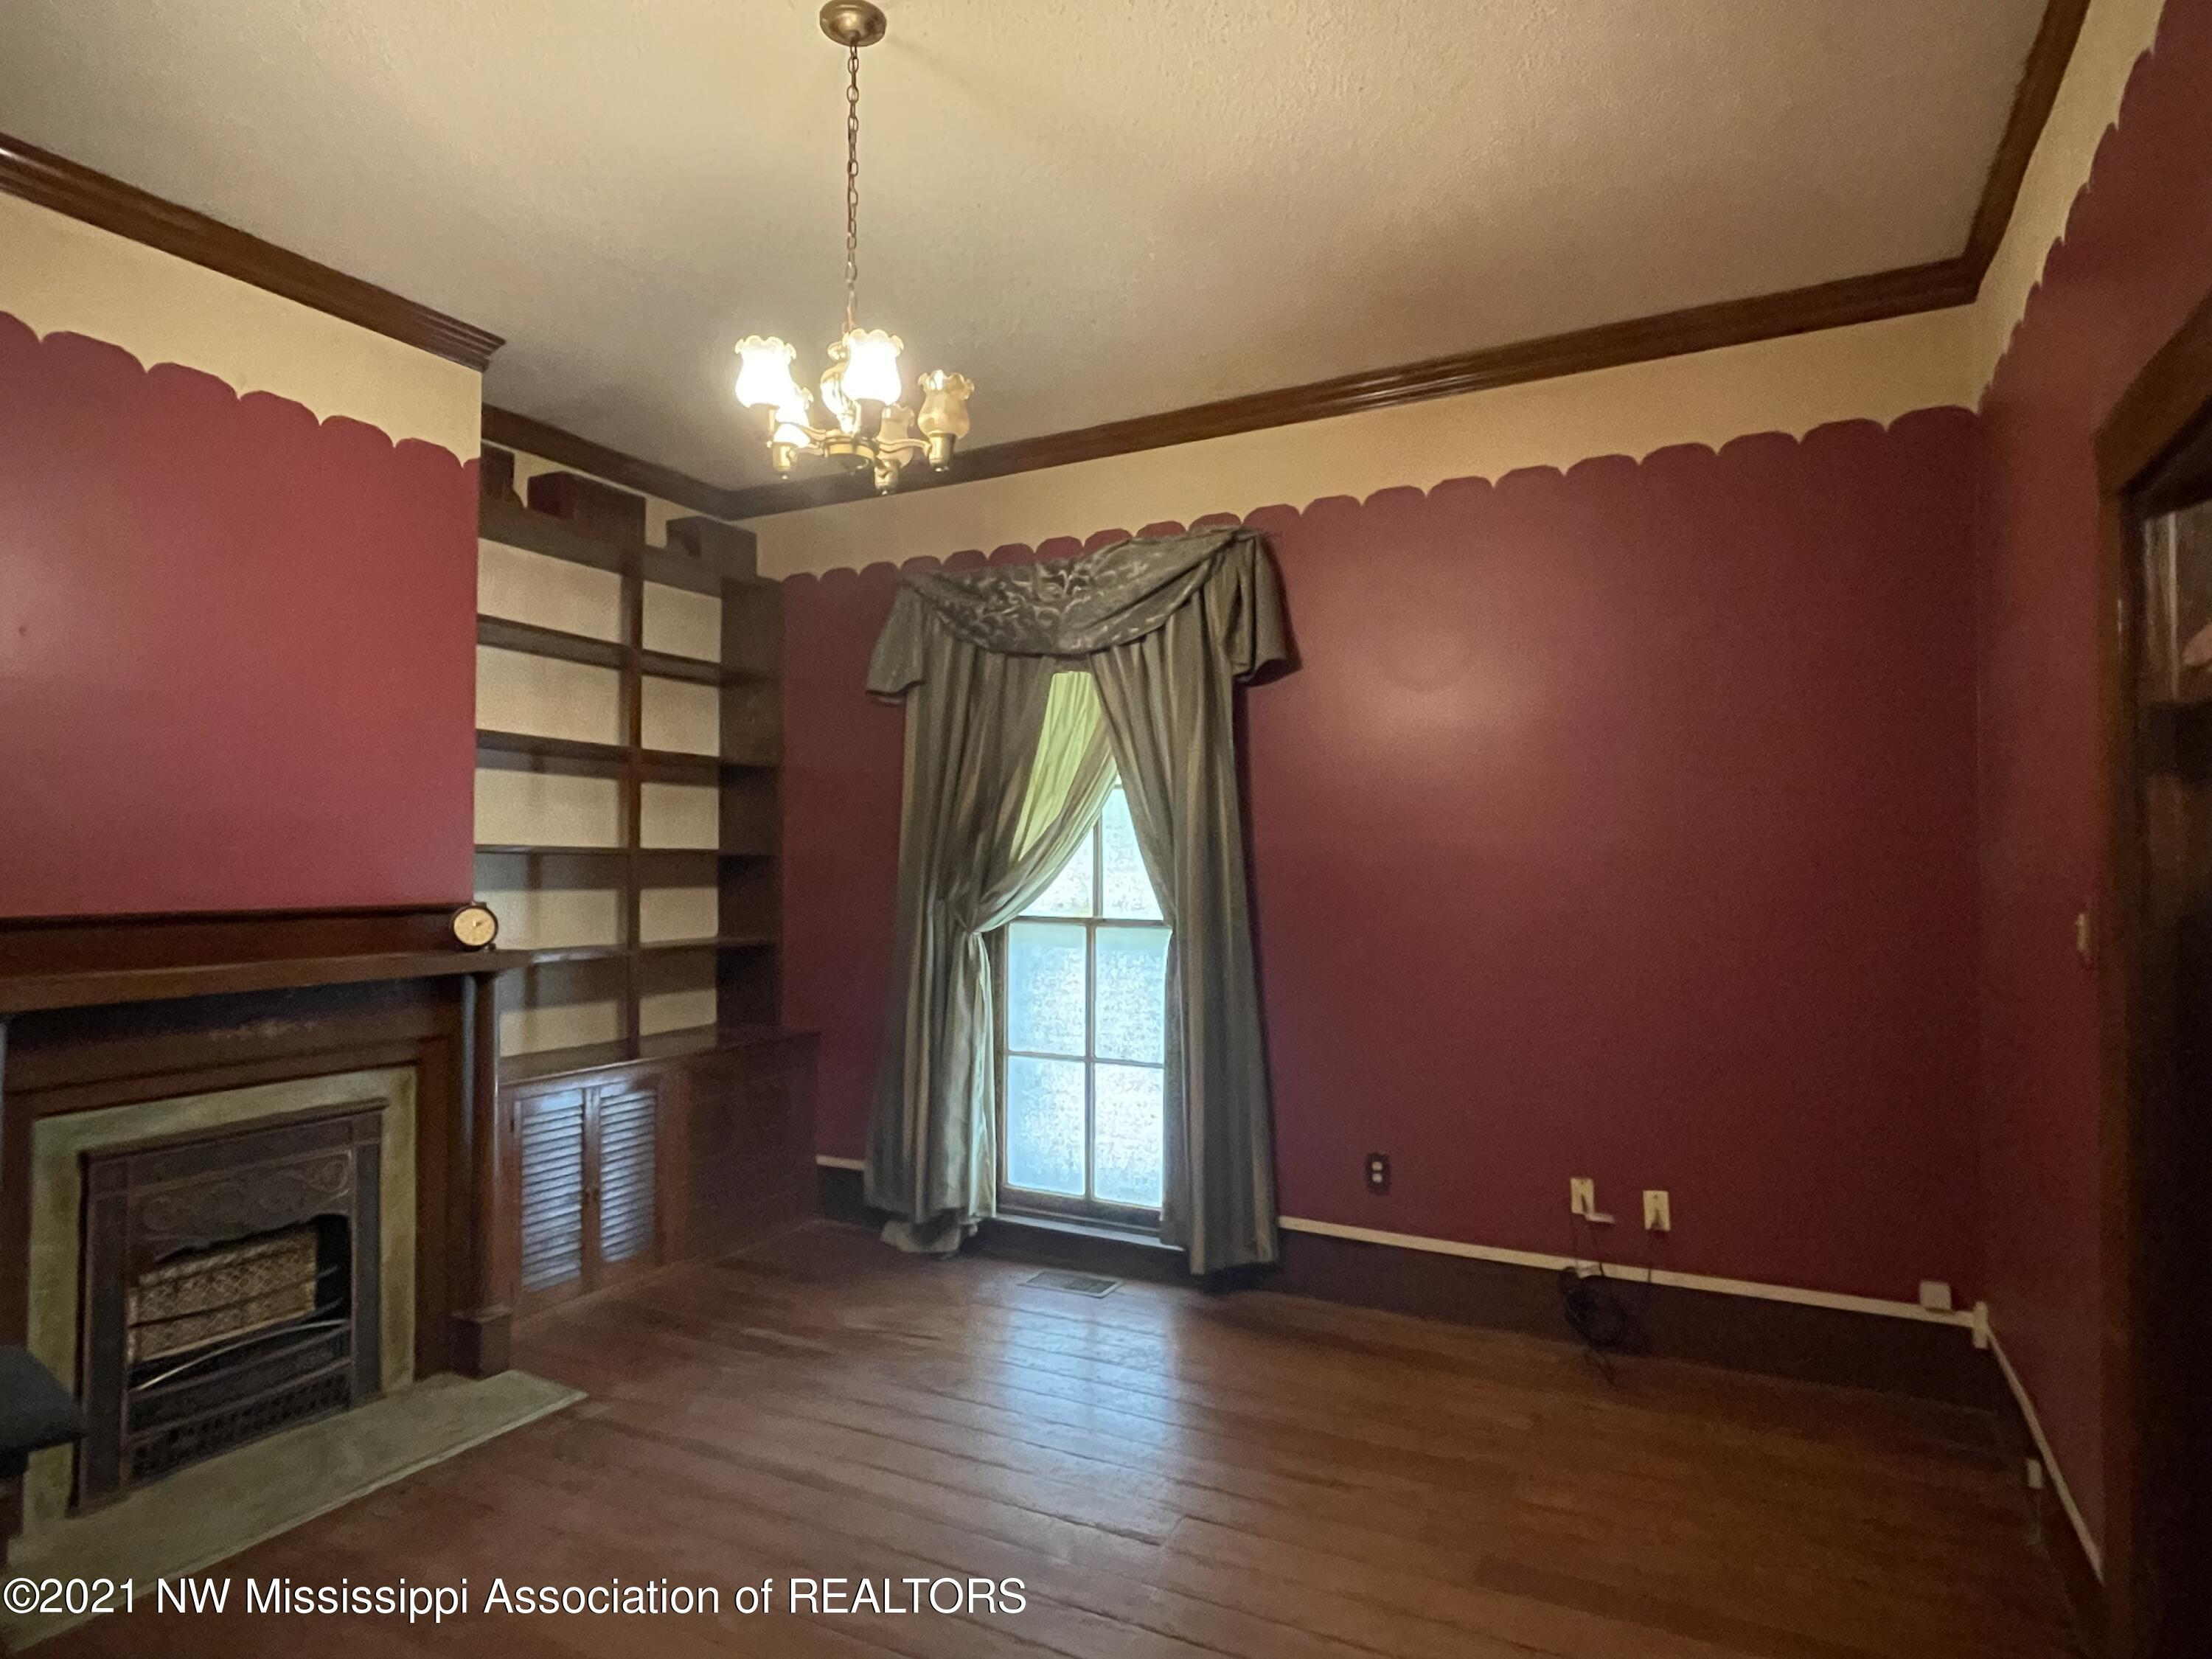 Great room with built in bookshelf